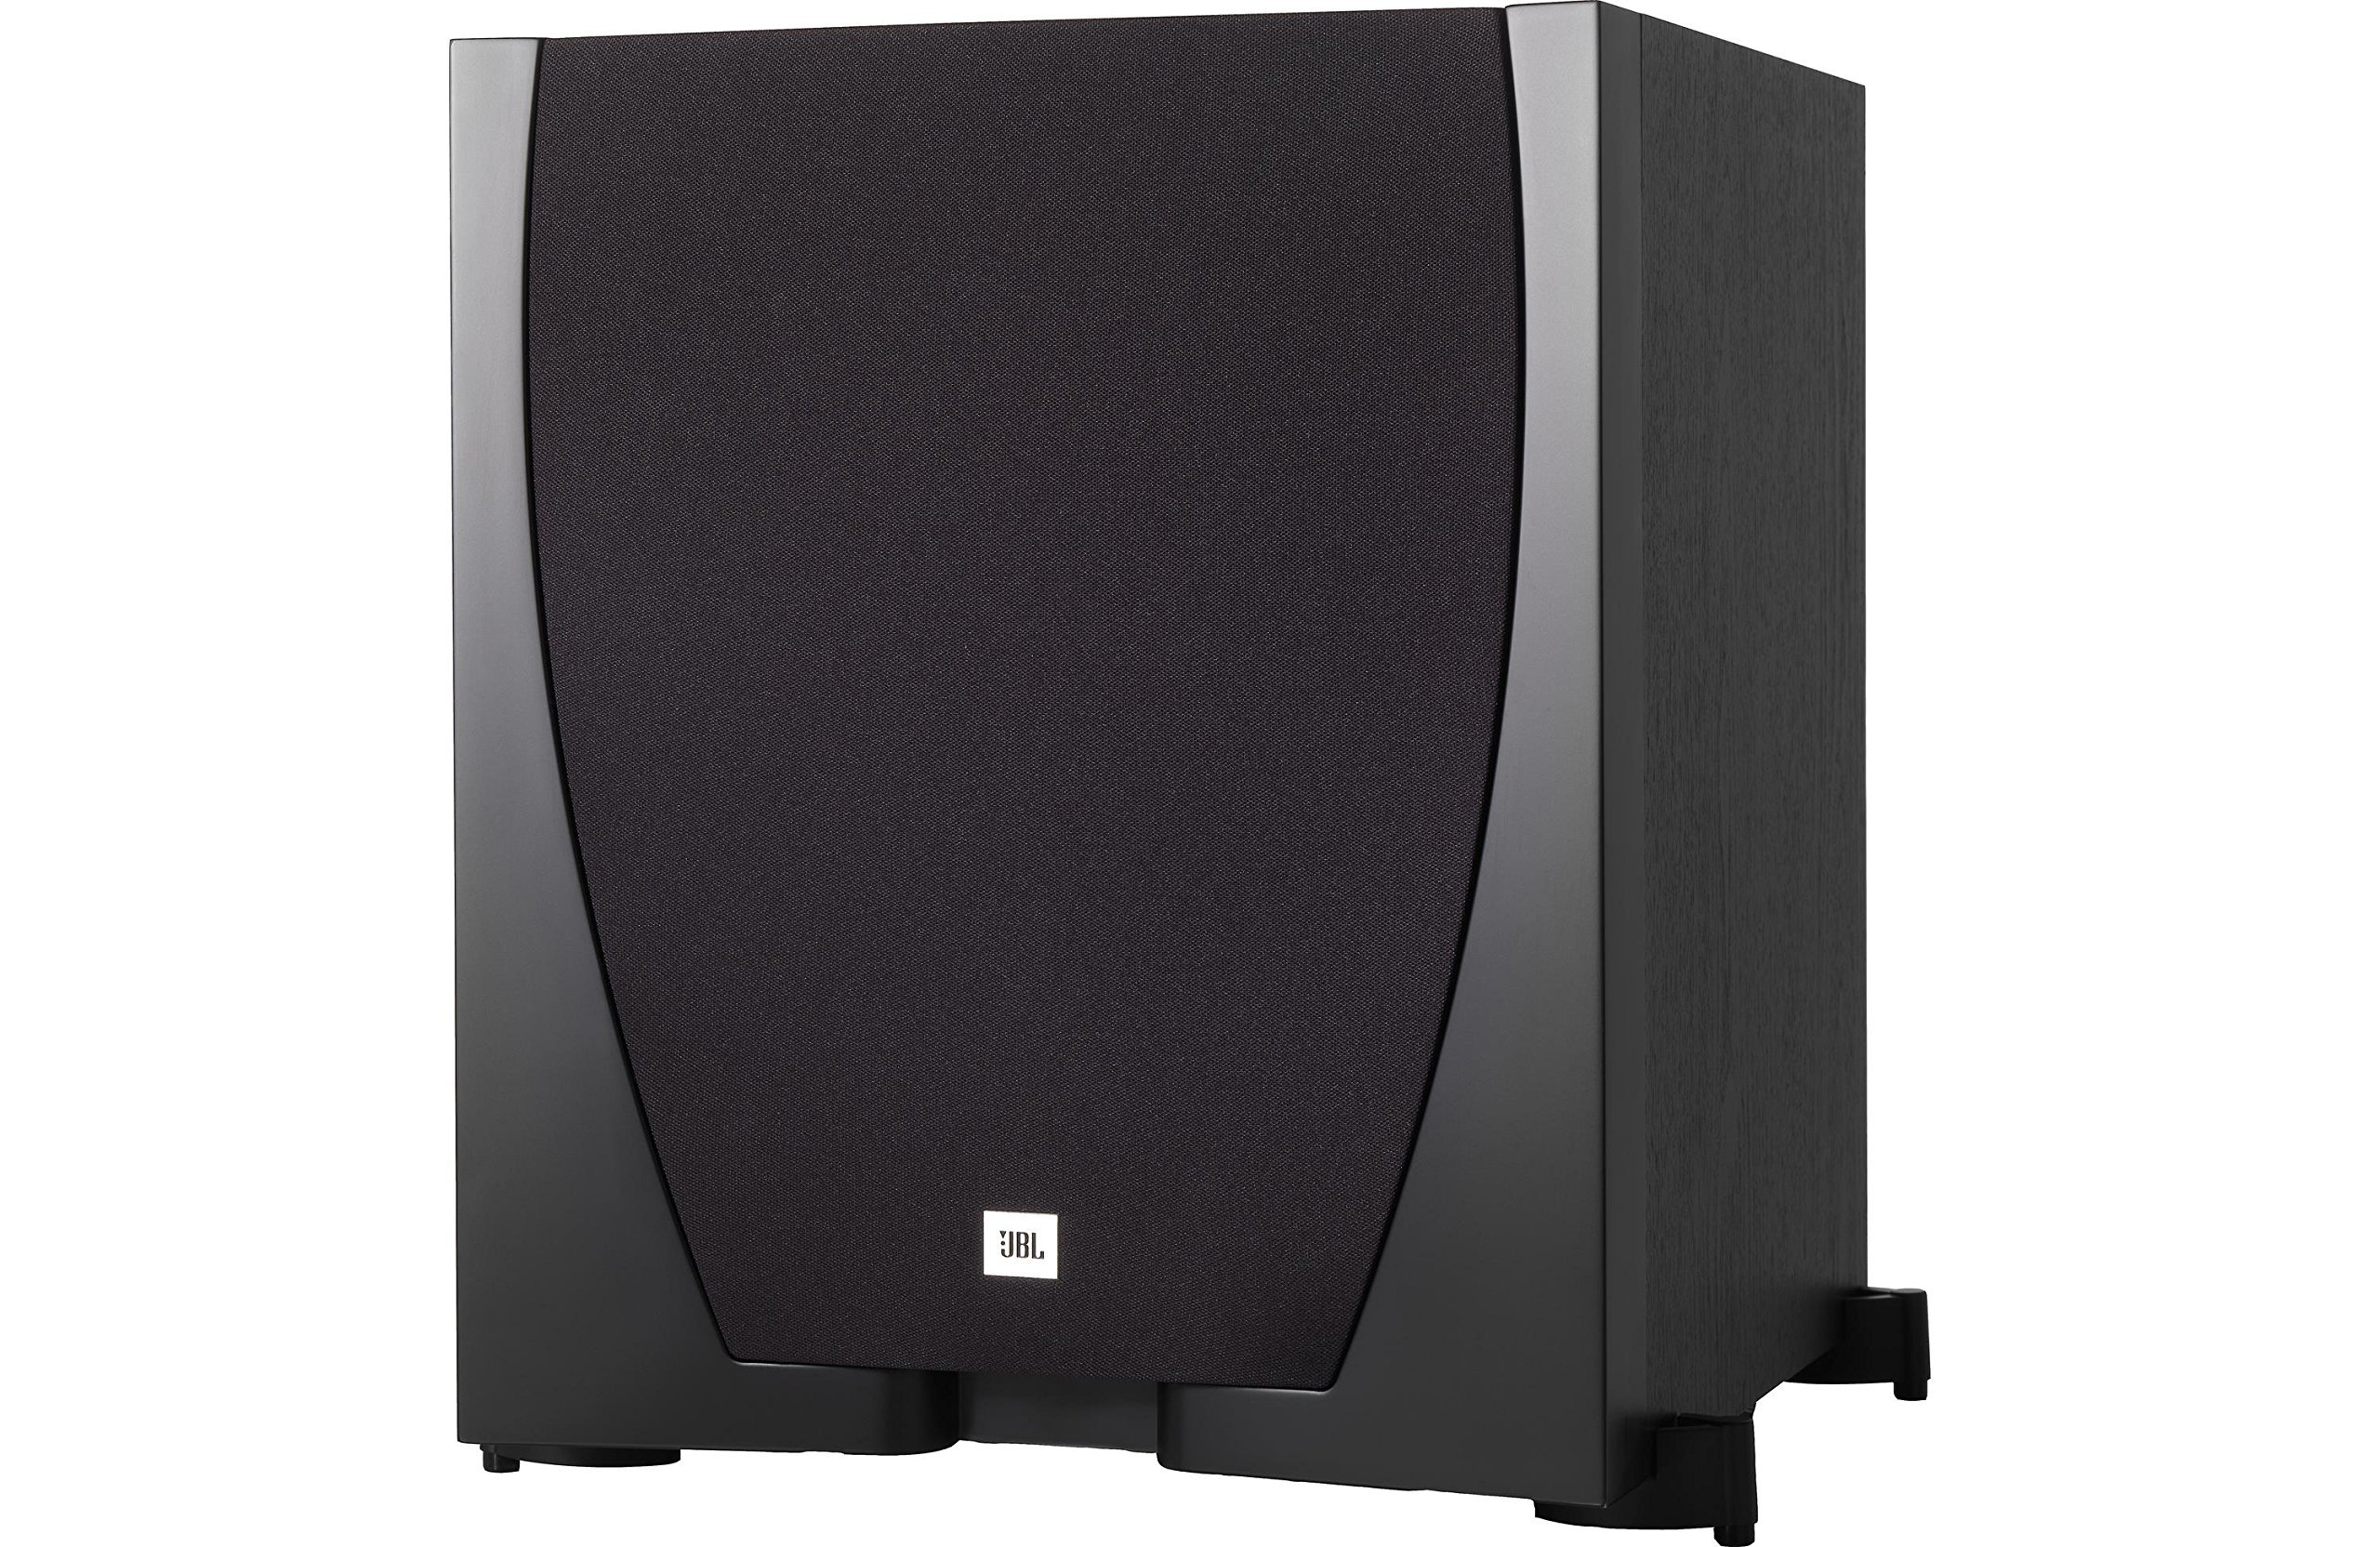 JBL Sub 550P High-Performance 10'' Powered Subwoofer Sealed Enclosure with Built-in 300-Watt RMS Amplifier by JBL